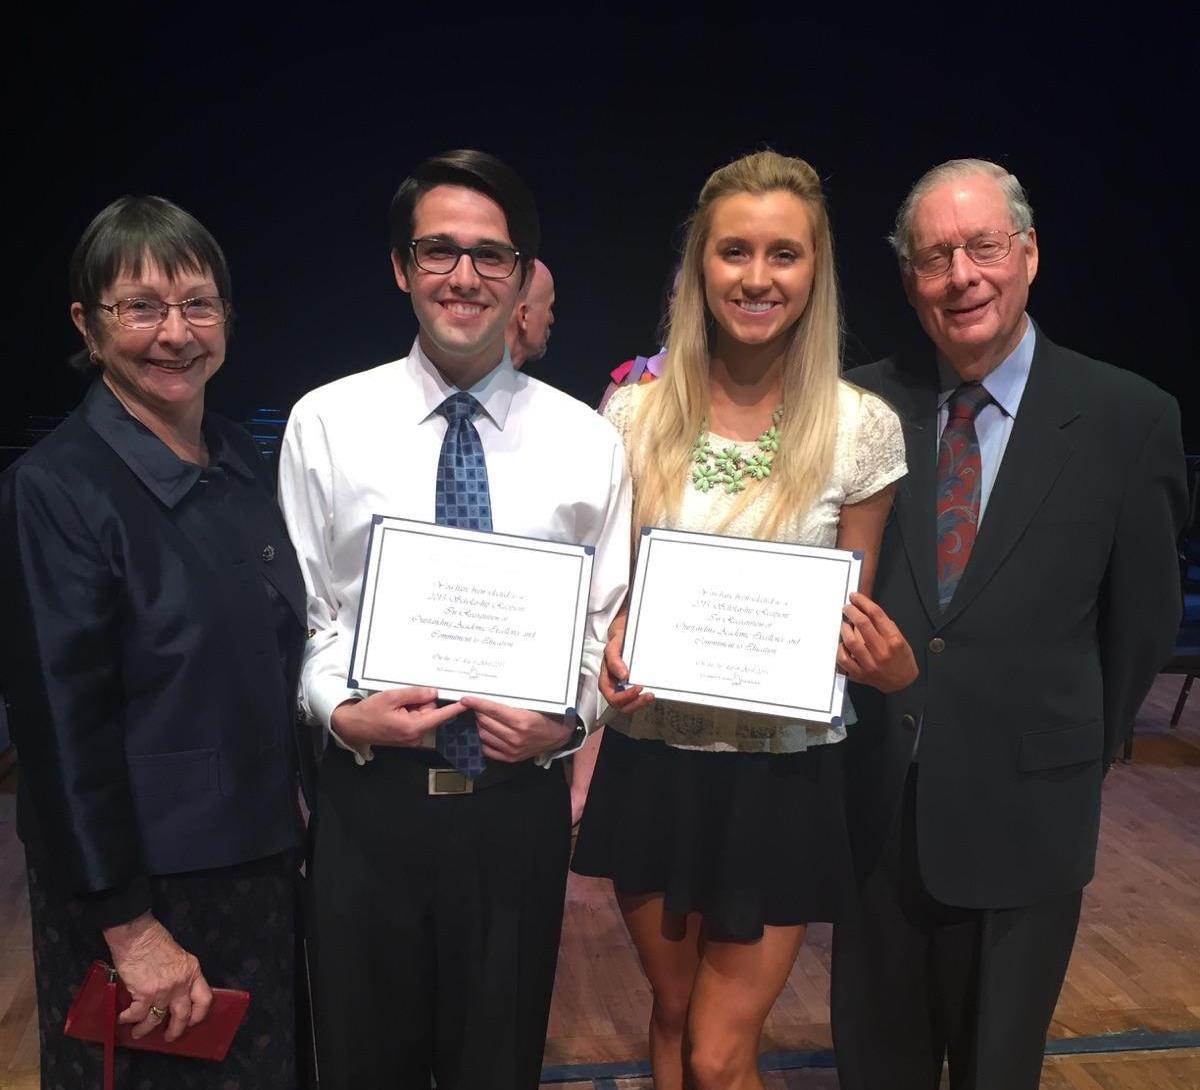 Scholarship ceremony 2015 - Bemis